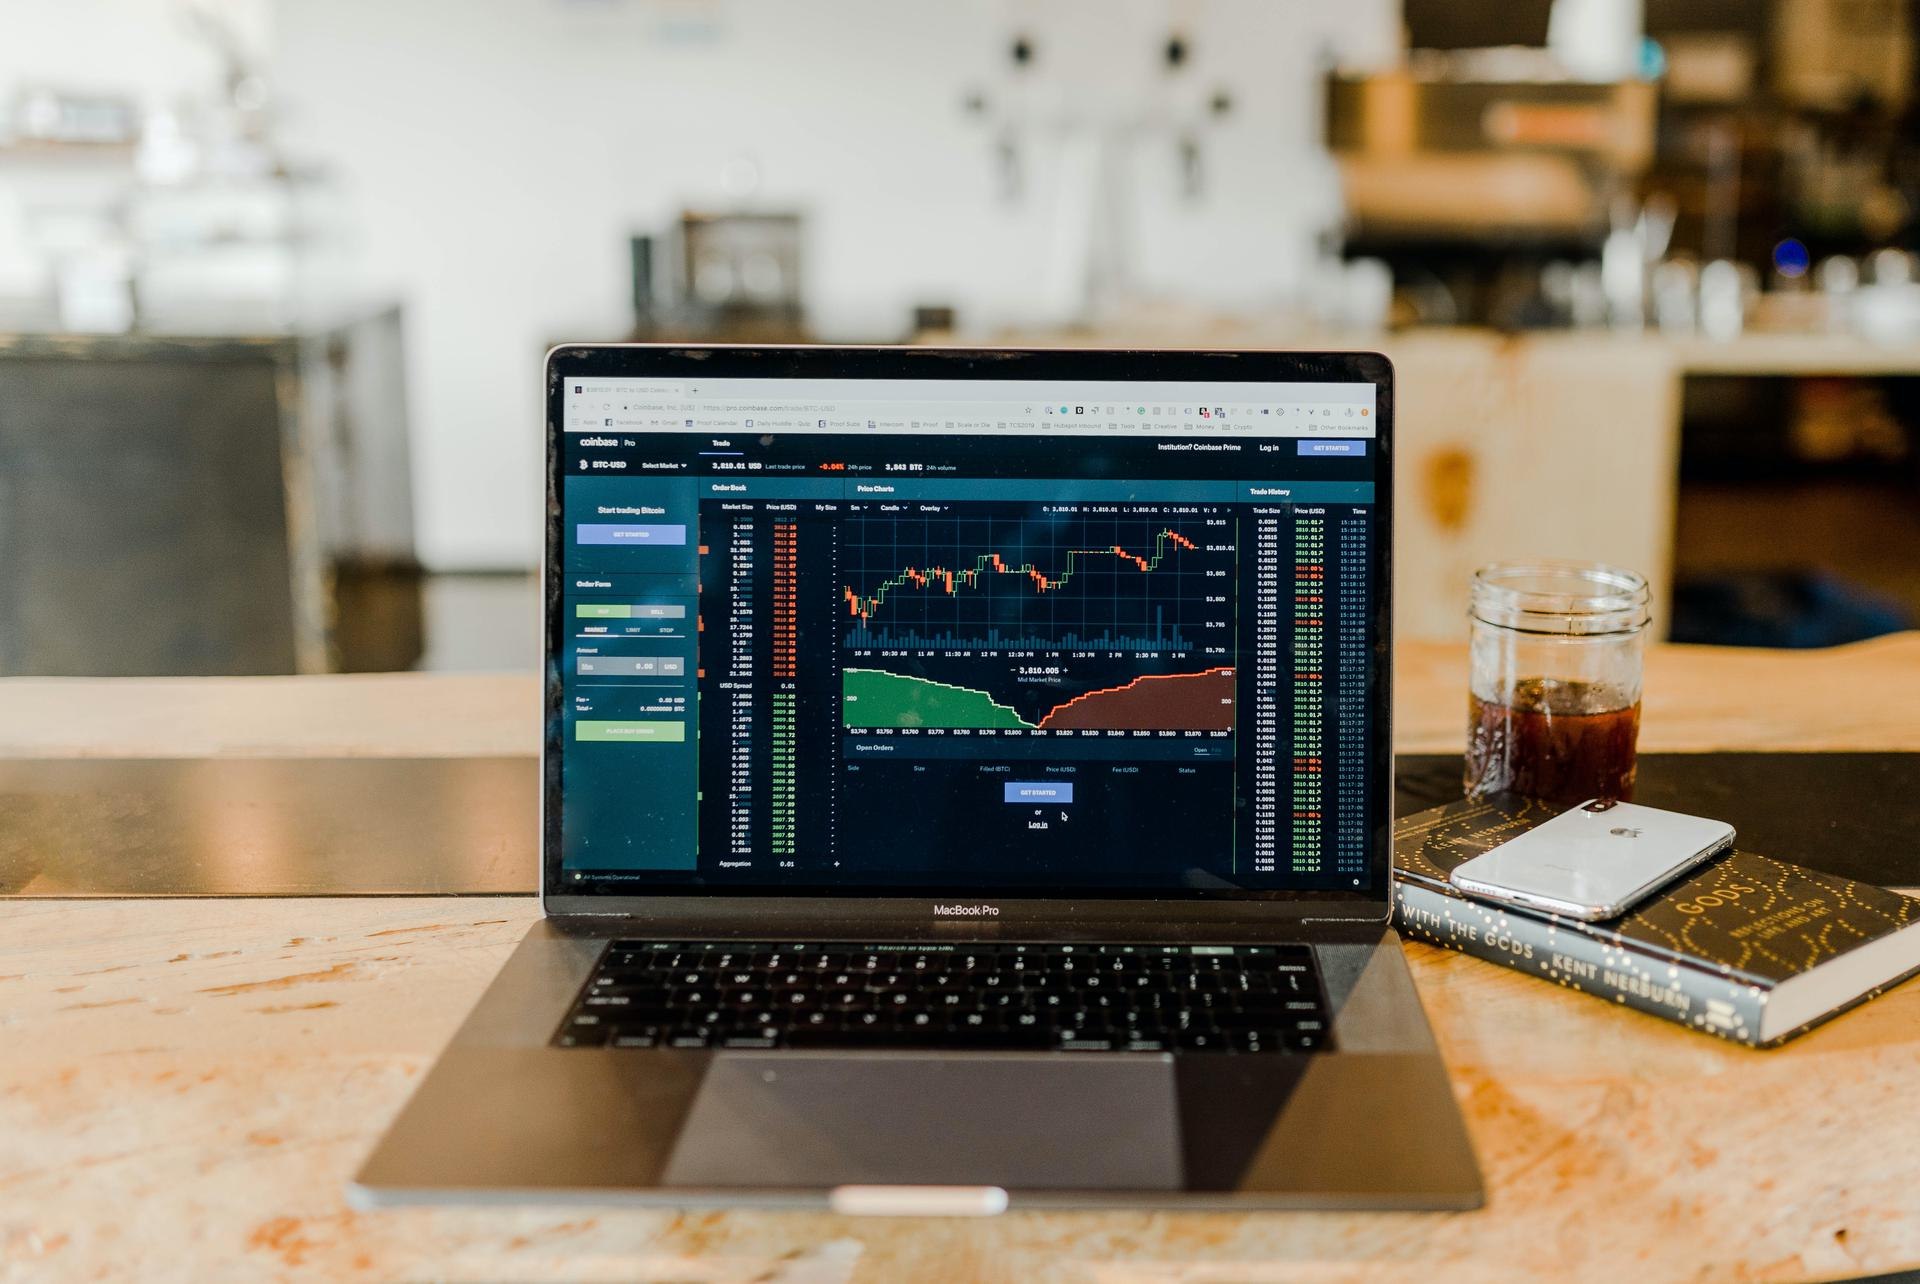 Stock Index on the laptop screen